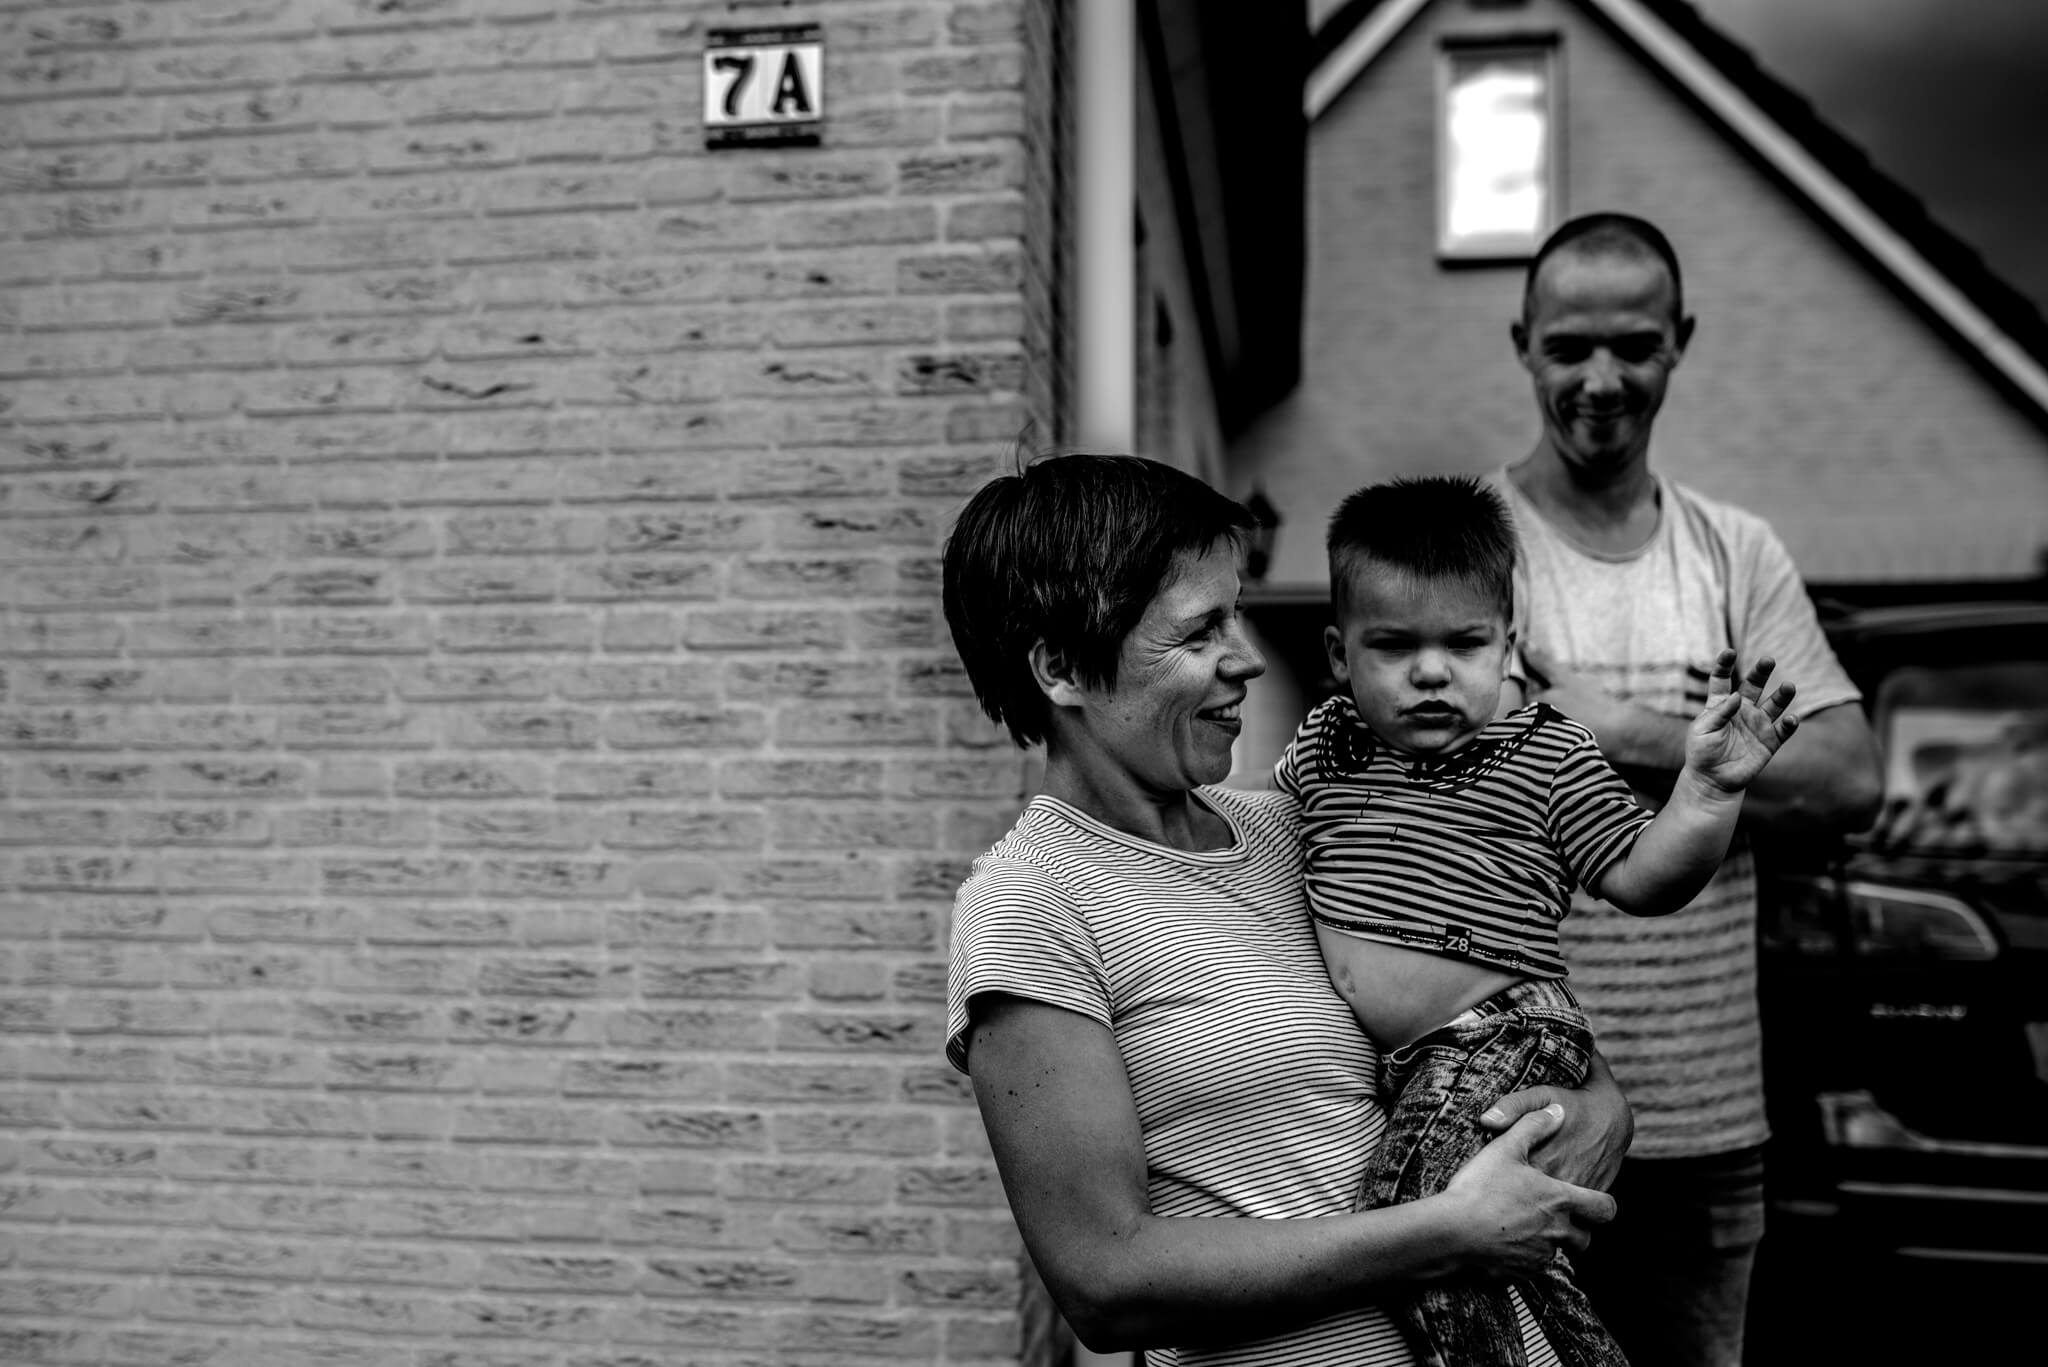 documentaire familiefotografie Oeffelt Cindy Willems